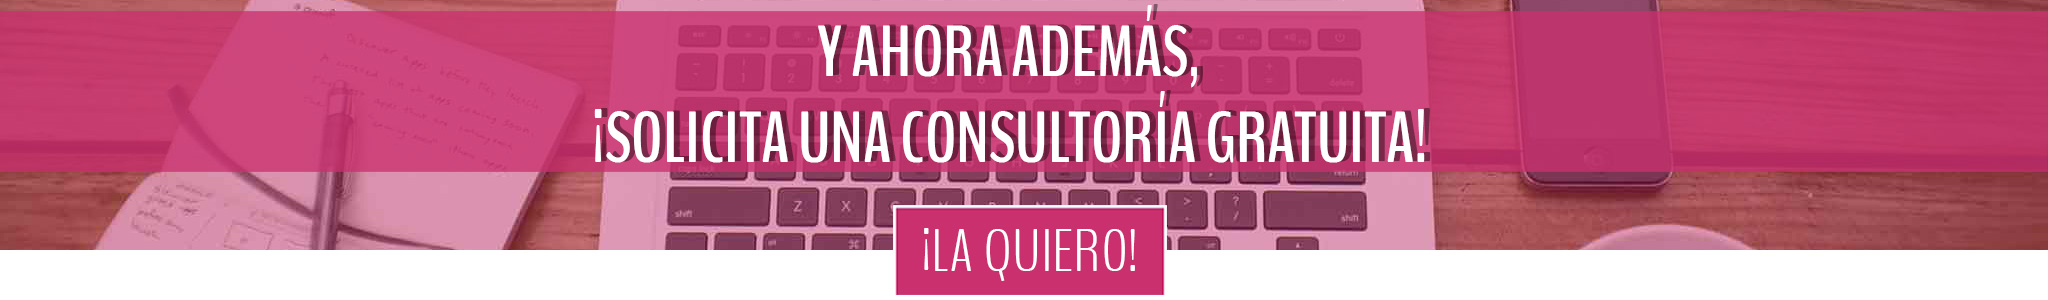 Pide tu Consultoría de Marketing Digital ¡¡GRATUITA!! Corre que es por tiempo limitado - AR Marketing para Pymes